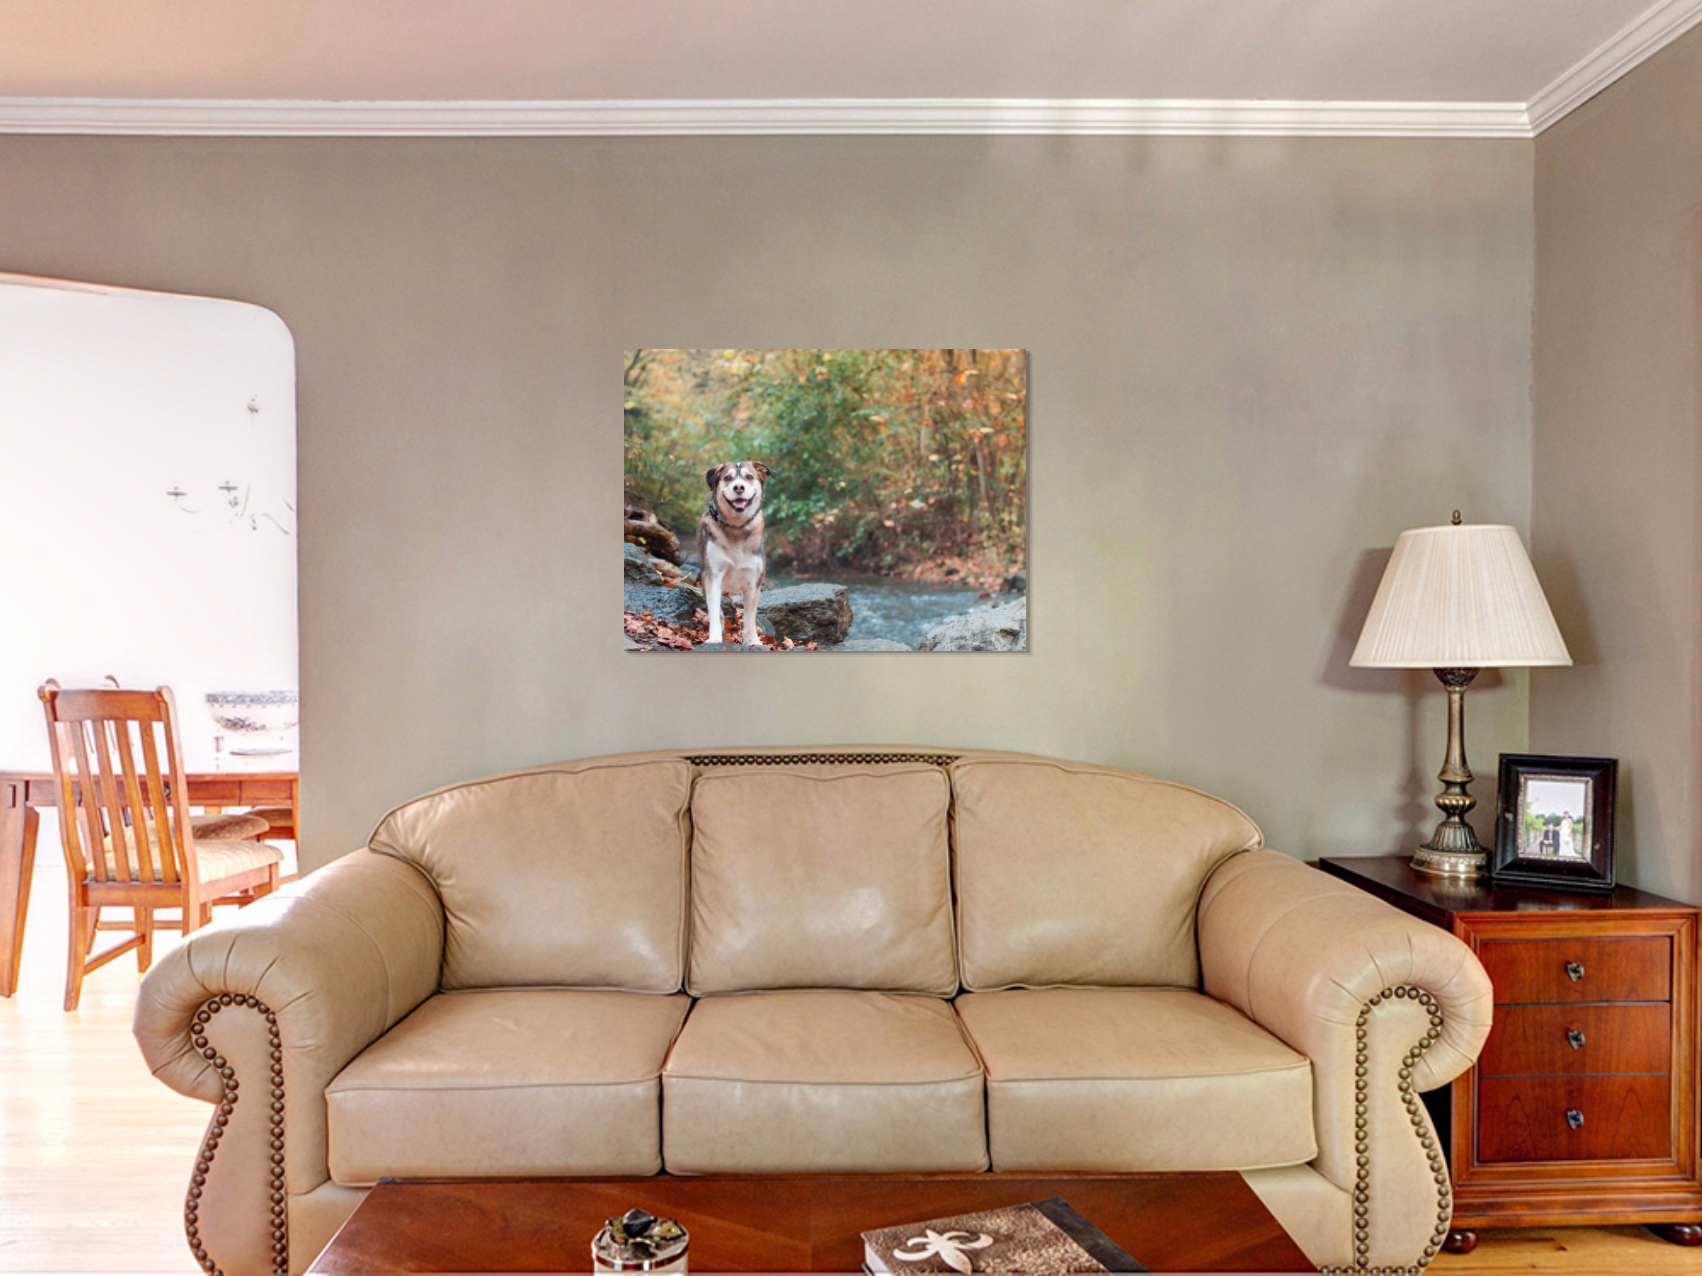 30x40 gallery-wrapped canvas in living room